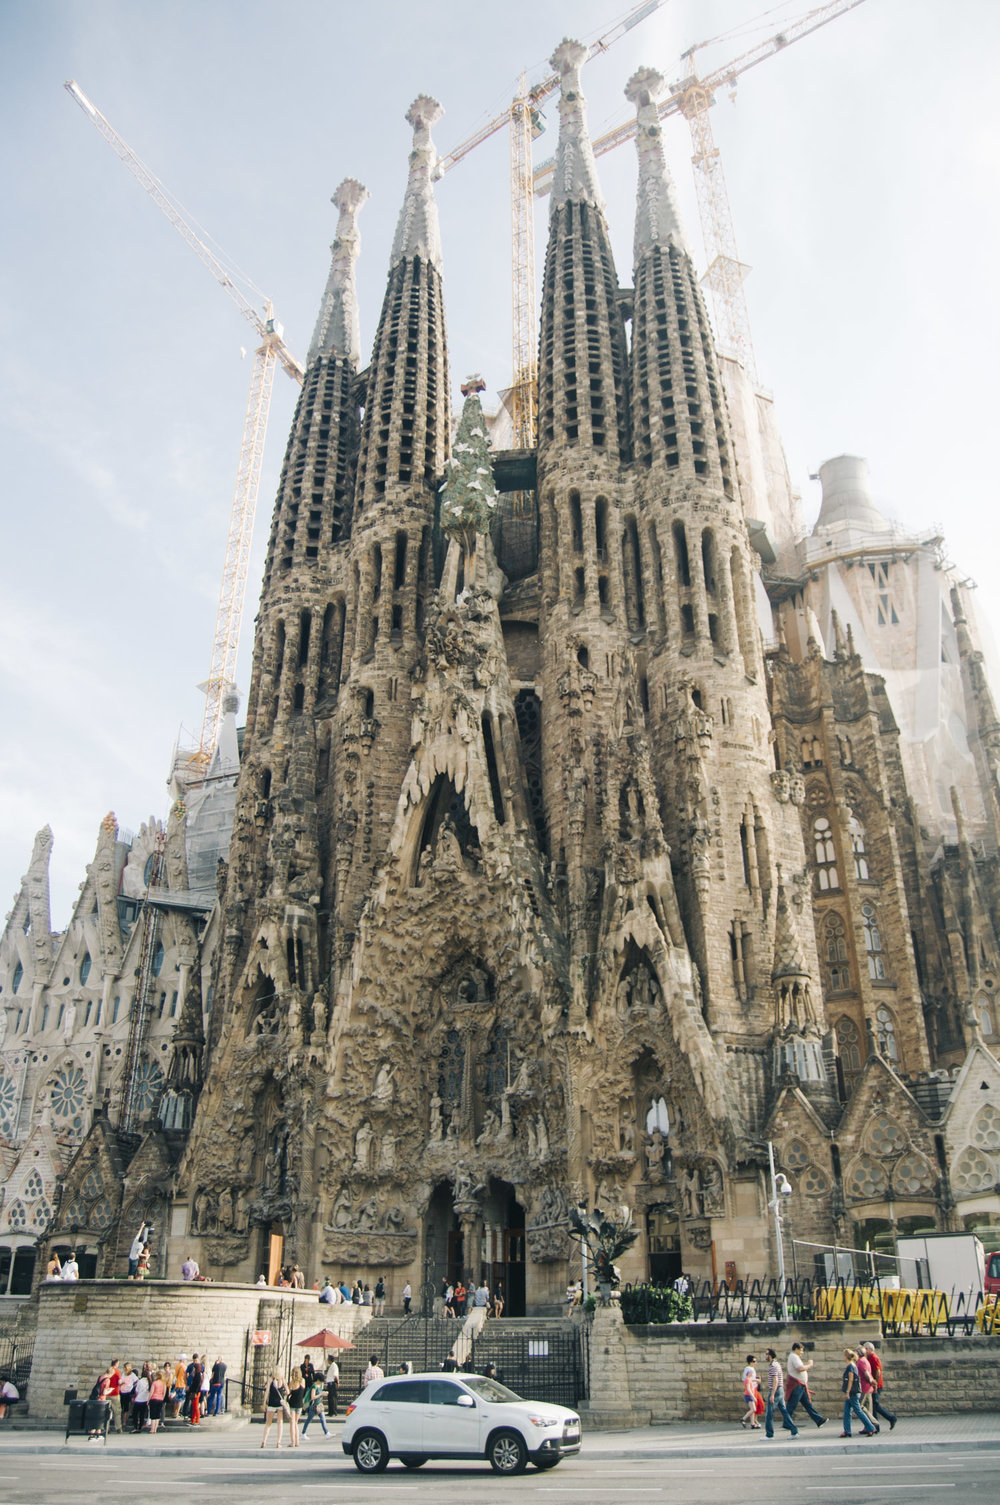 Sagrada Família - La Sagrada Familia, one of the world's most famous churches, designed by the renowned architect Antoni Gaudi, stands proud in Barcelona. Although it is a central and highly important church in the Catholic world, La Sagrada Familia acts as a center of spirituality in which harmony, peace, and love can be shared by every individual regardless of their beliefs. Each one of the 18 turrets and the four spectacular façades has a symbolic value behind its stunning beauty. Furthermore, visitors can see Gaudi's crypt and may climb one of the towers and see Barcelona from high above.